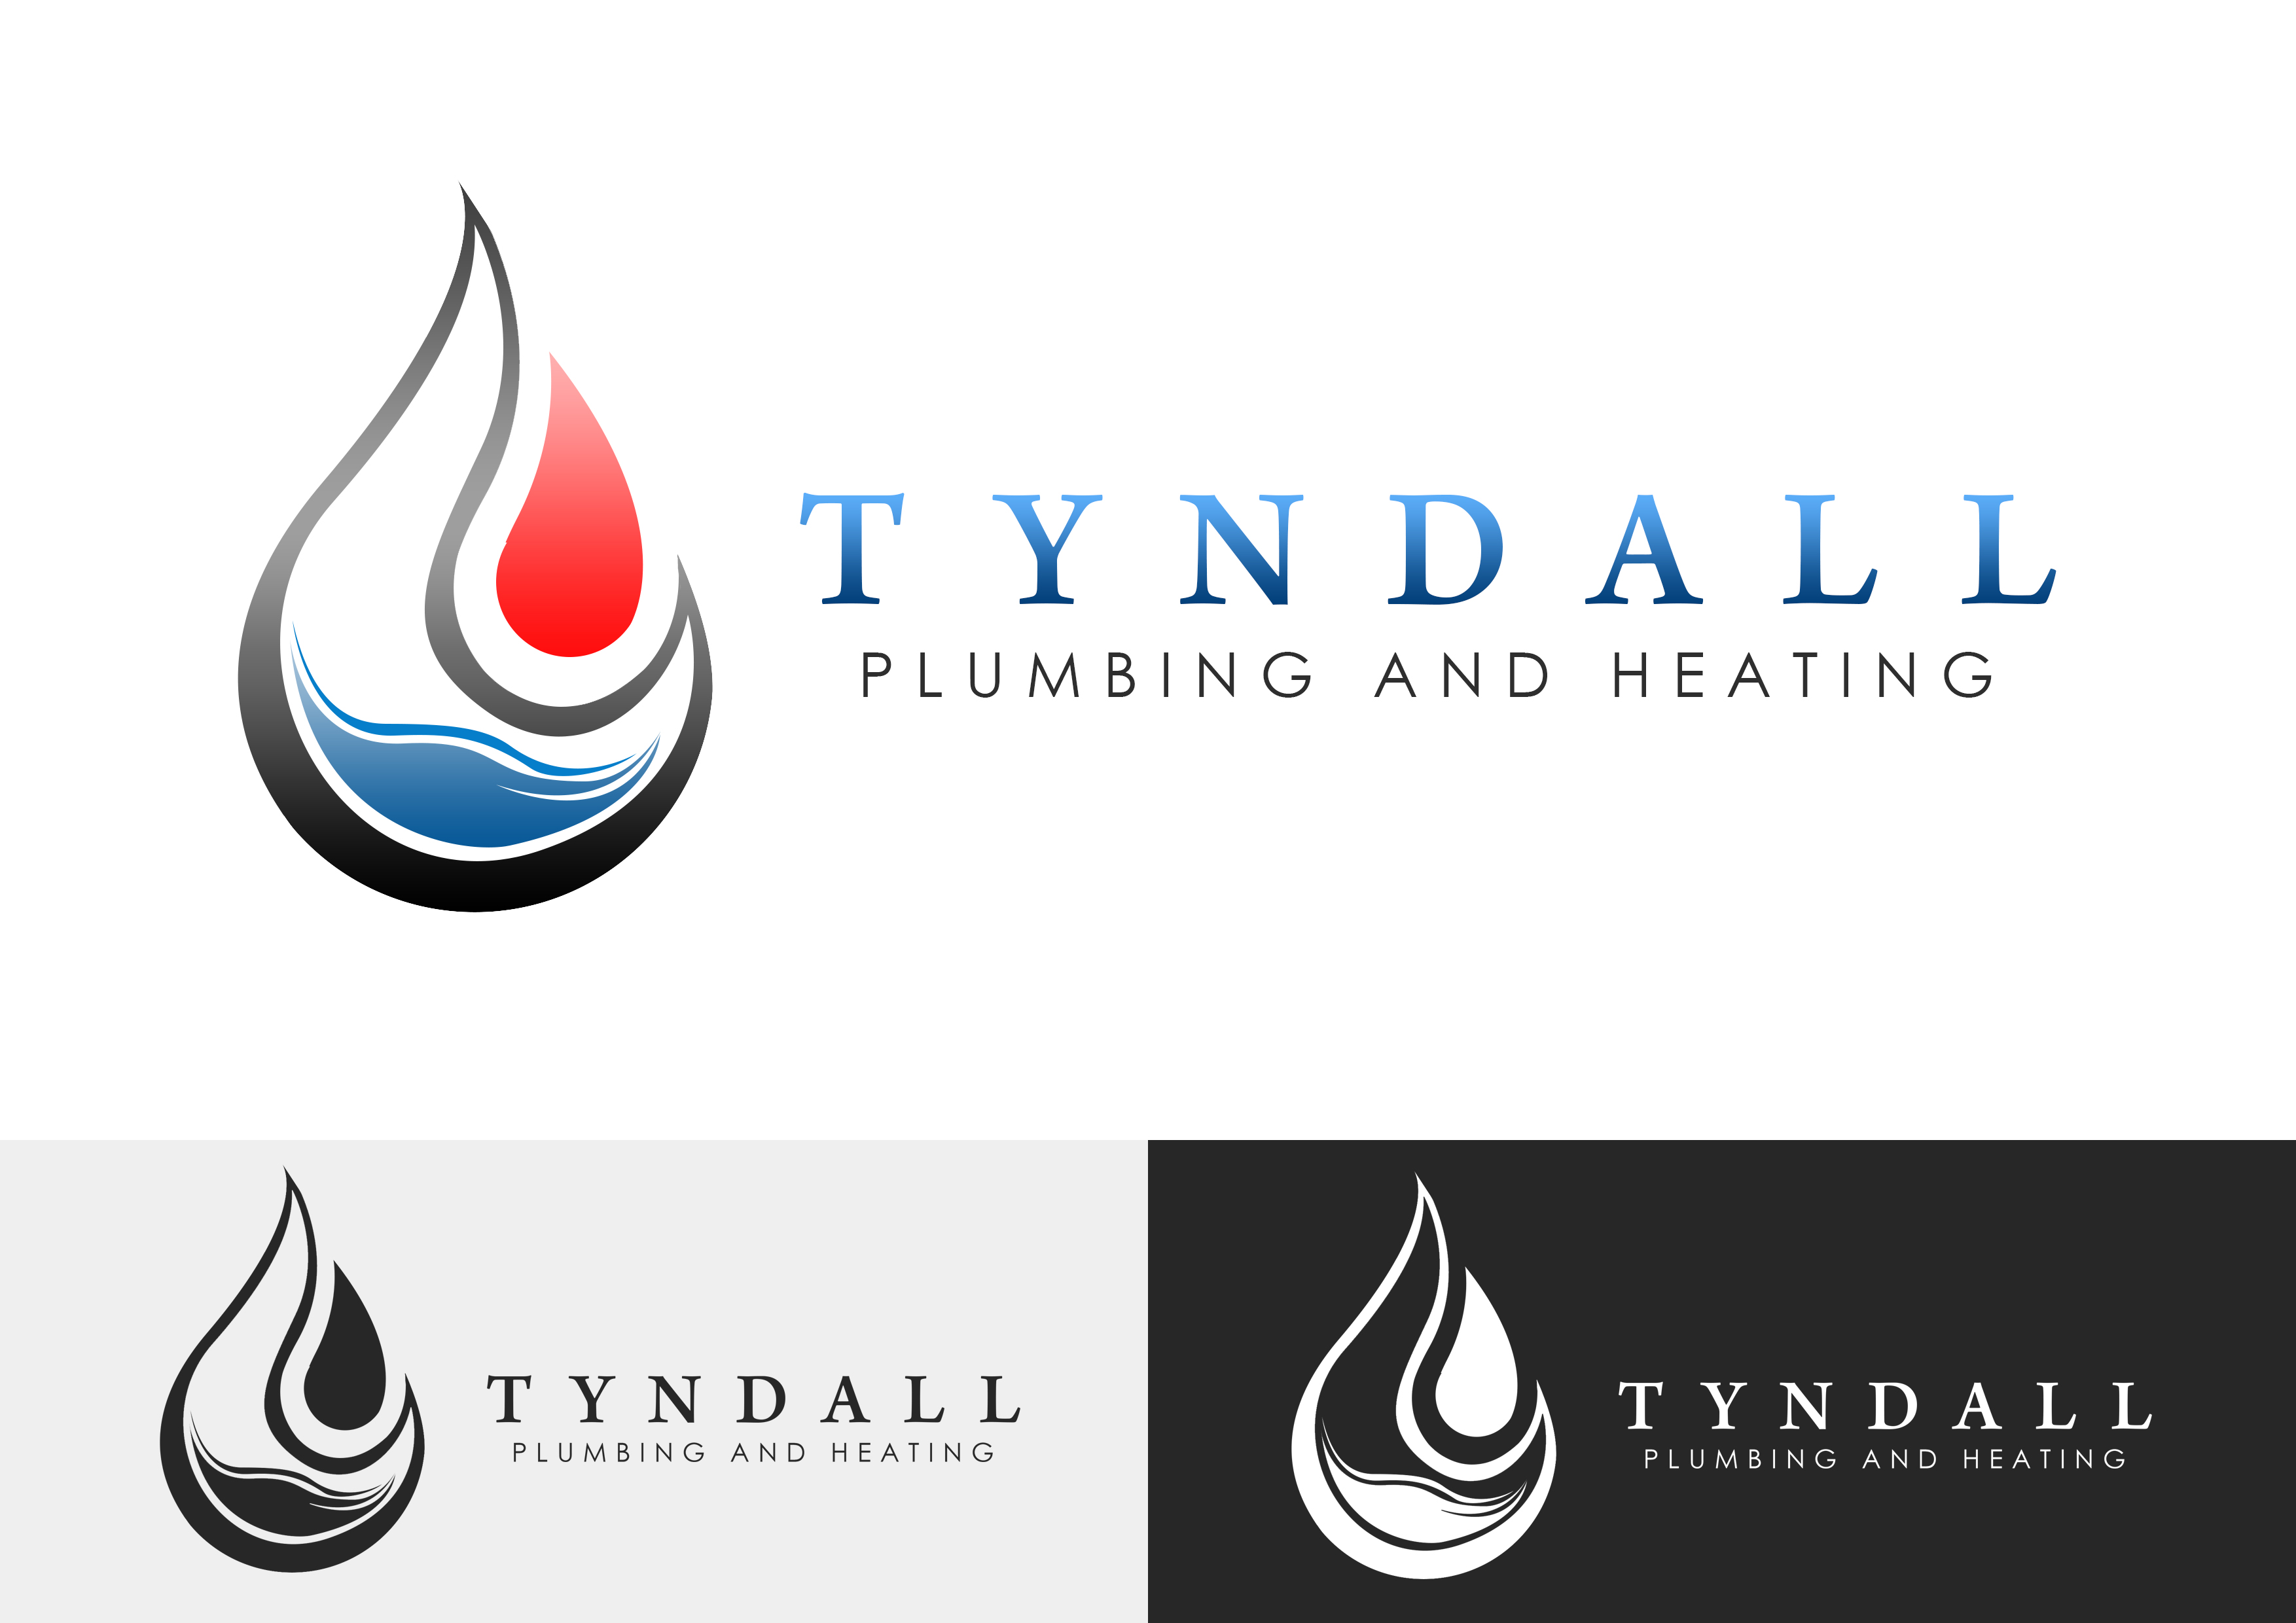 Logo Design by Jesther Jordan Minor - Entry No. 33 in the Logo Design Contest Imaginative Logo Design for Tyndall Plumbing & Heating.